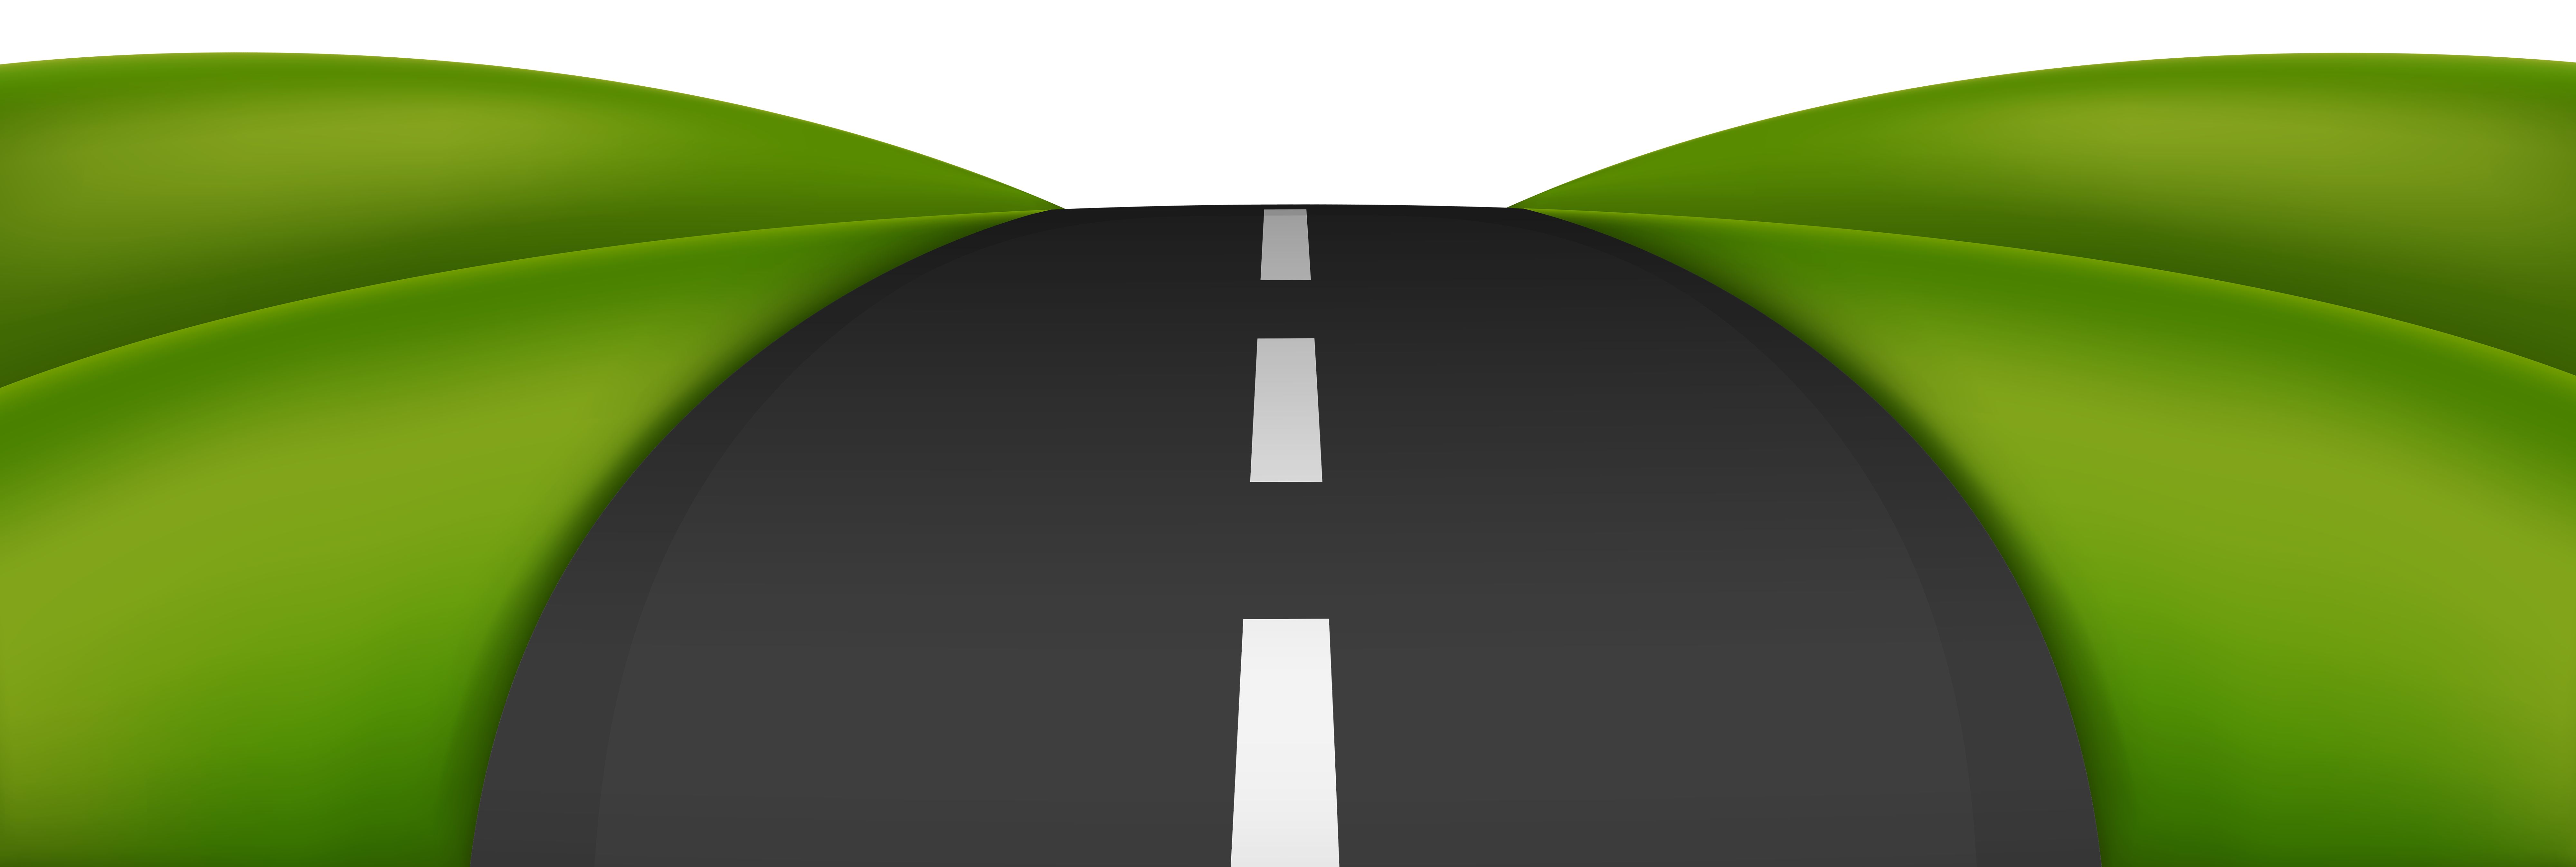 And ground png clip. Clipart grass road